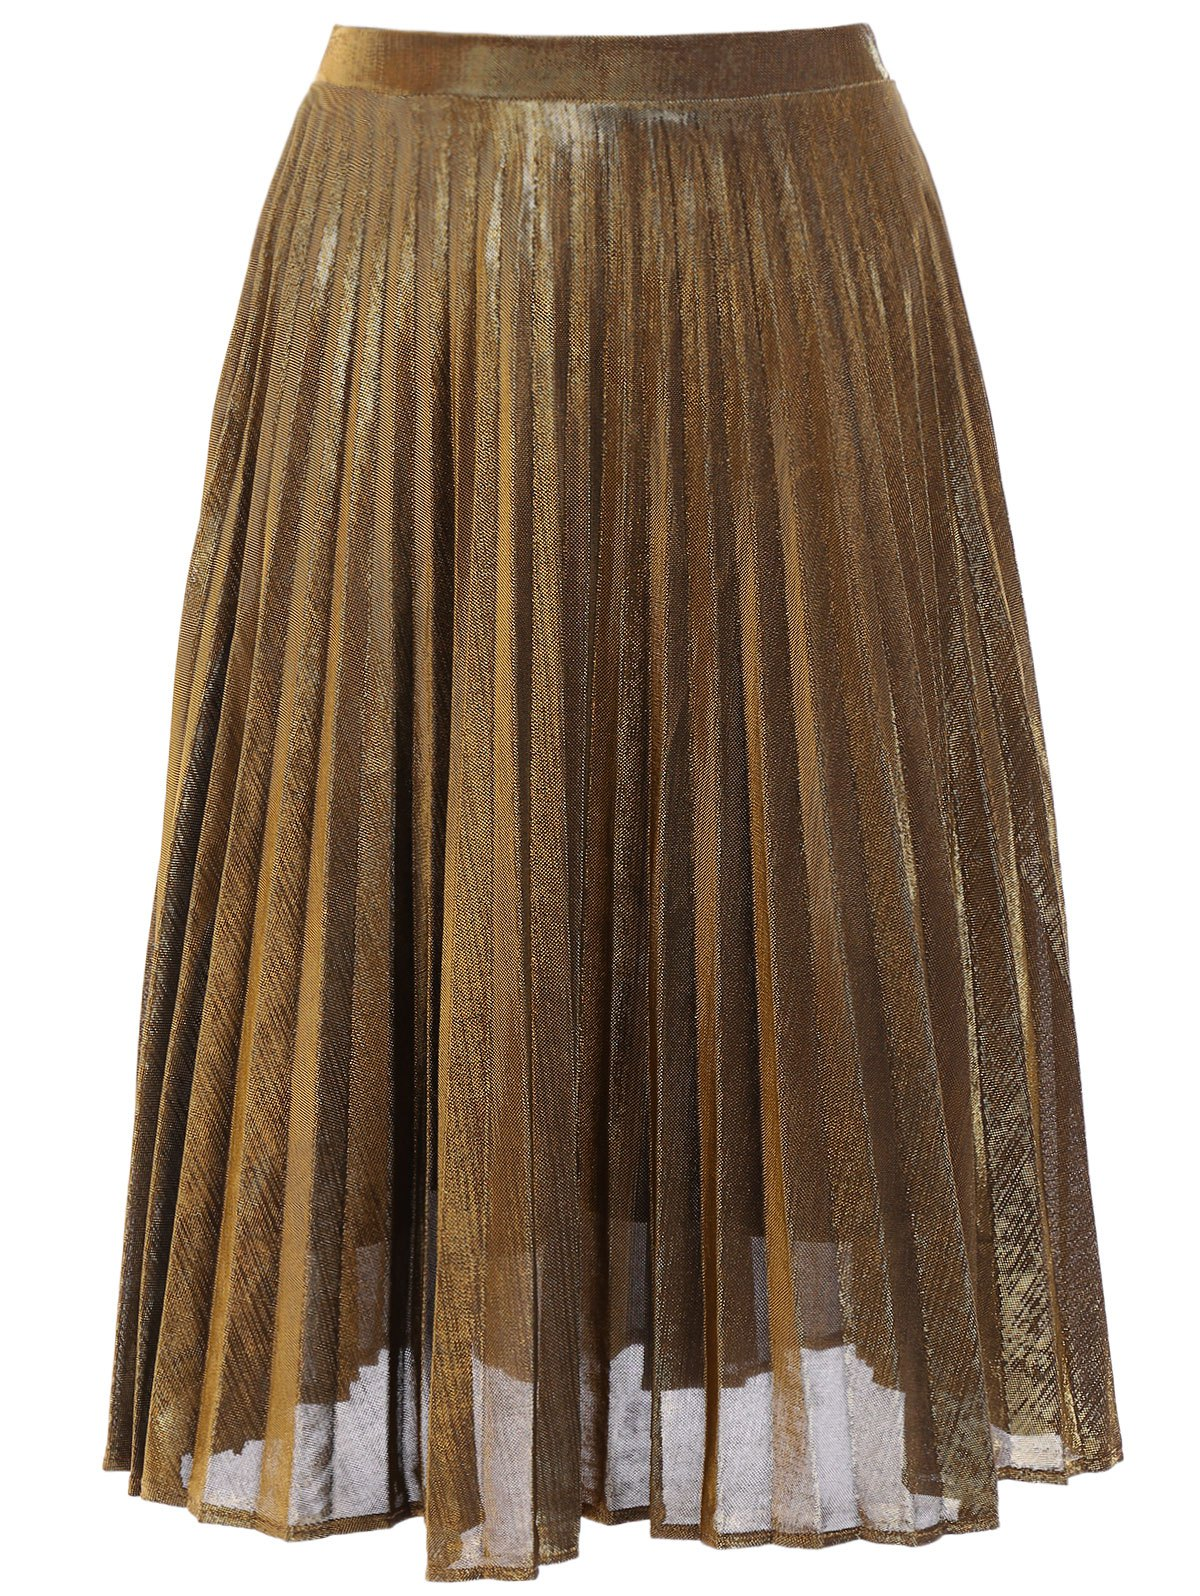 Fashionable Solid Color Pleated Midi Skirt For Women - GOLDEN S